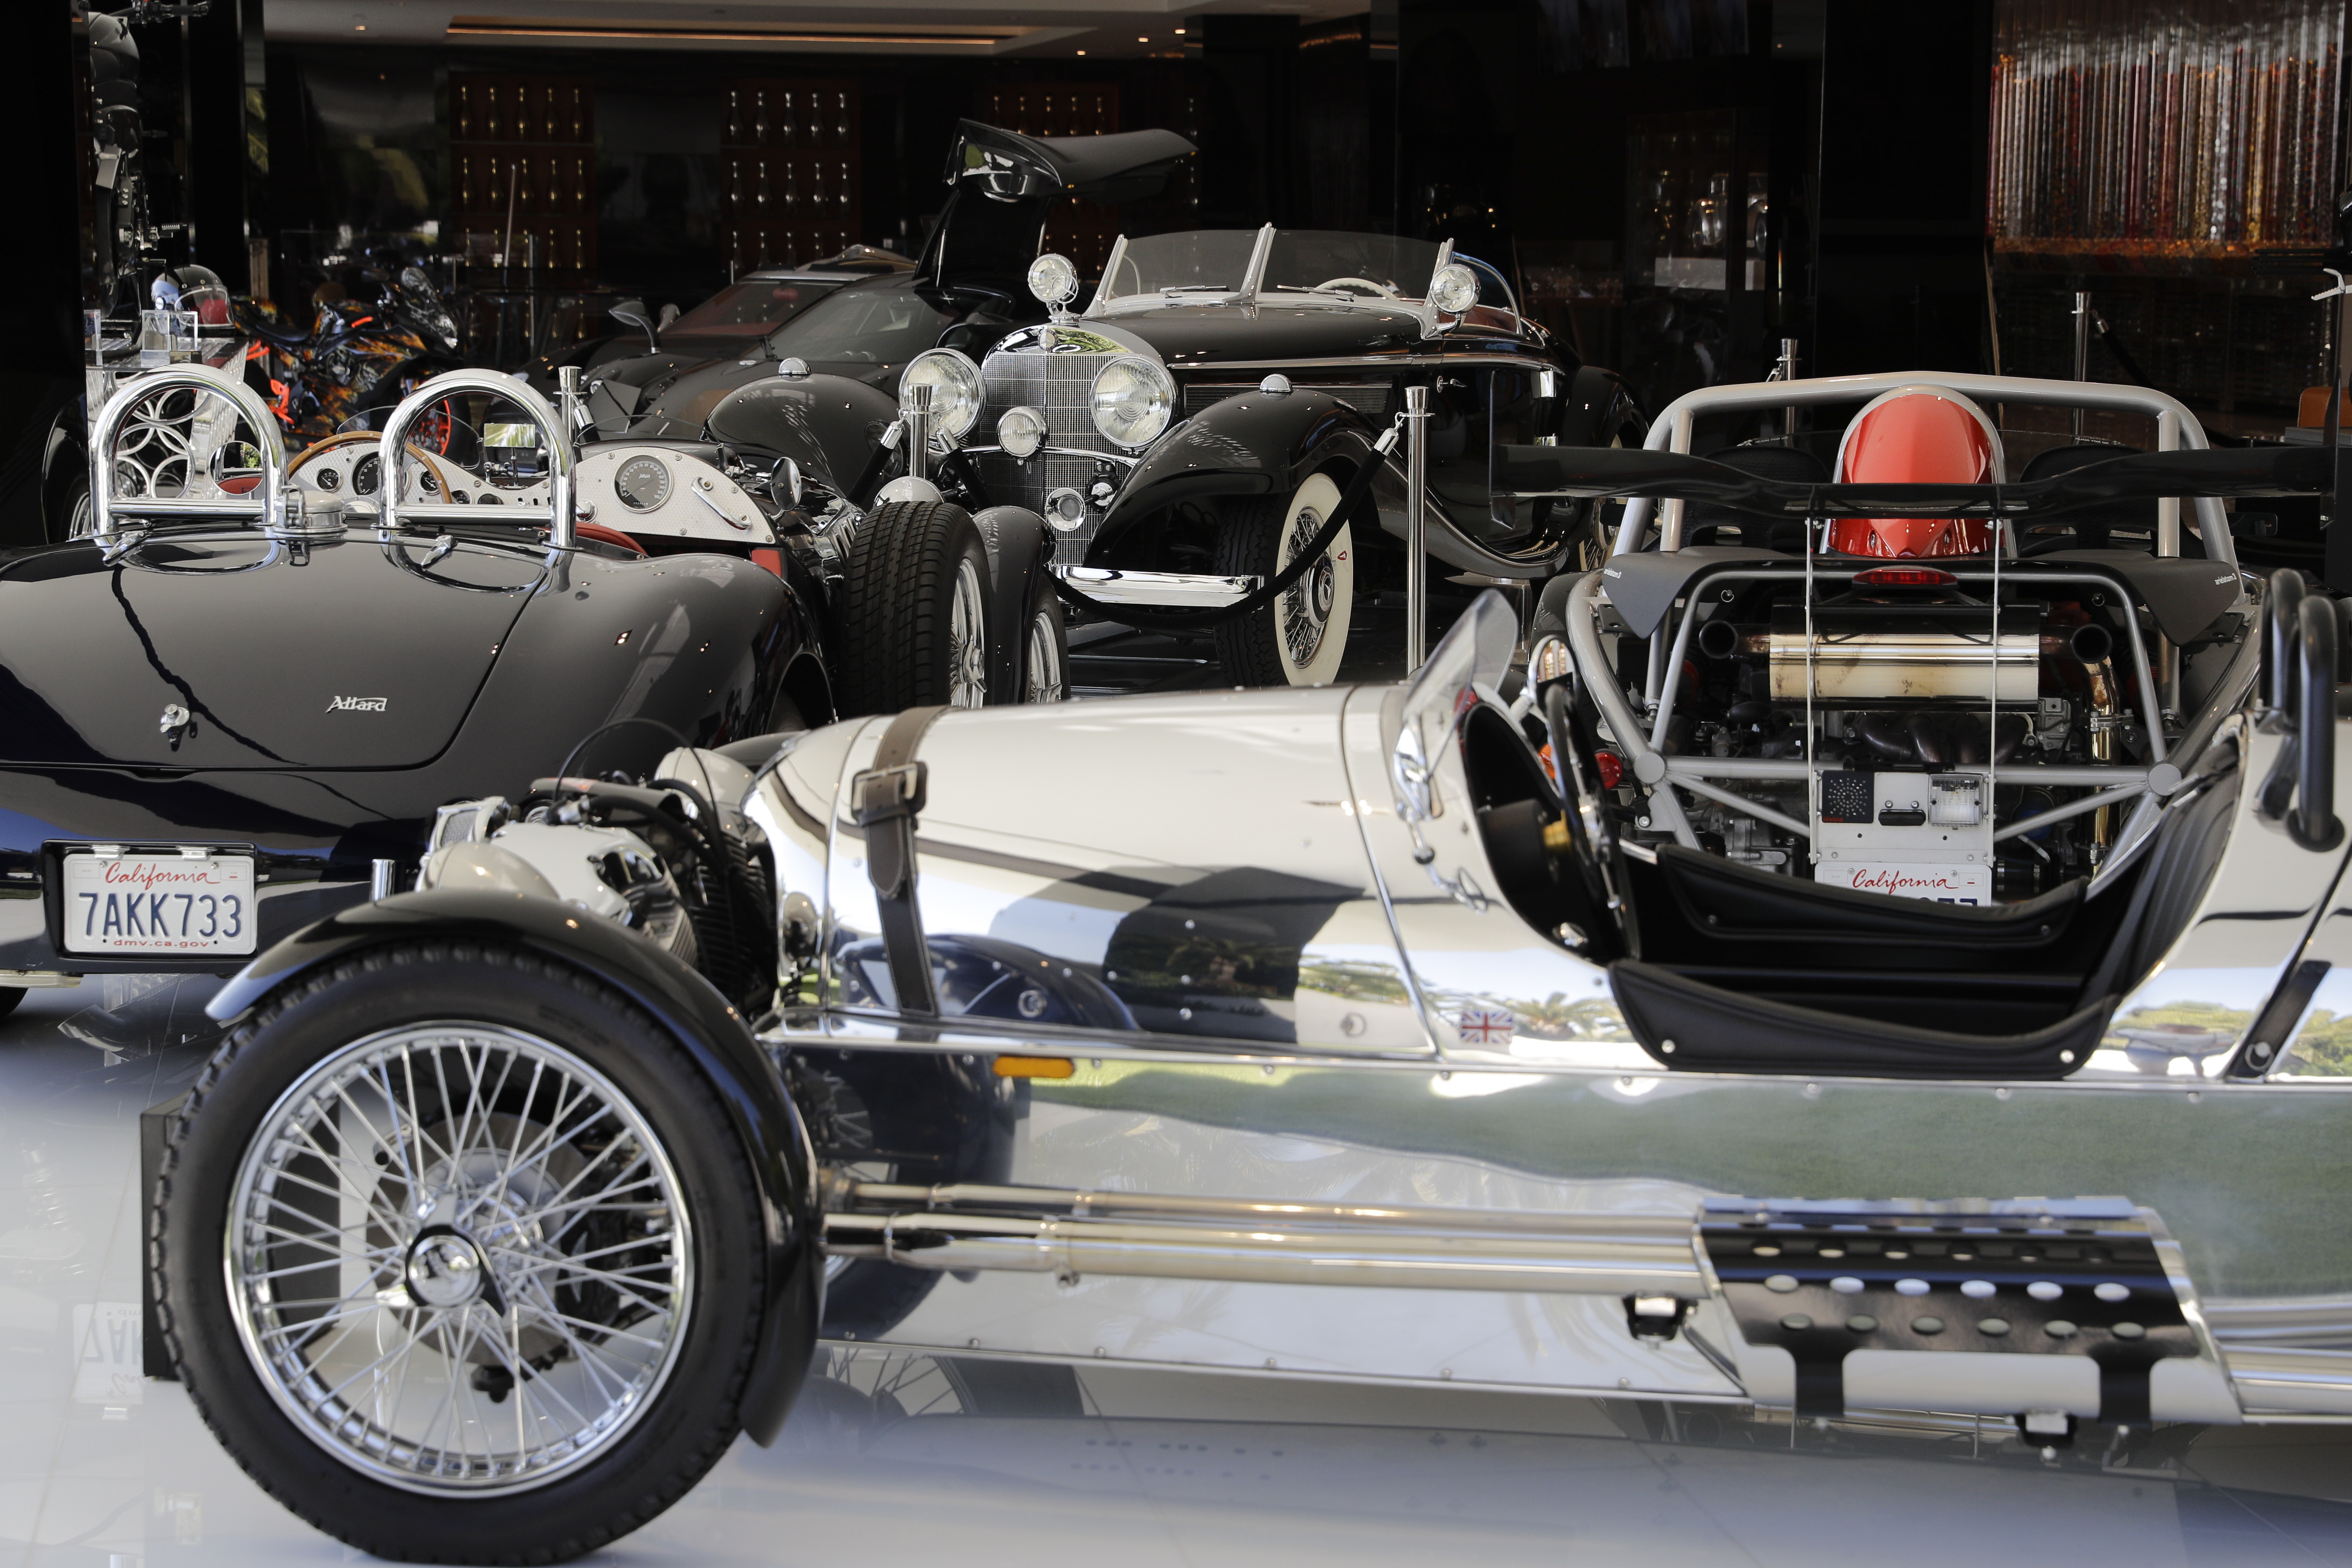 Classic cars valued over $30 million in the garage area of a $250 million mansion in the Bel-Air area of Los Angeles. (AP Photo/Jae C. Hong)